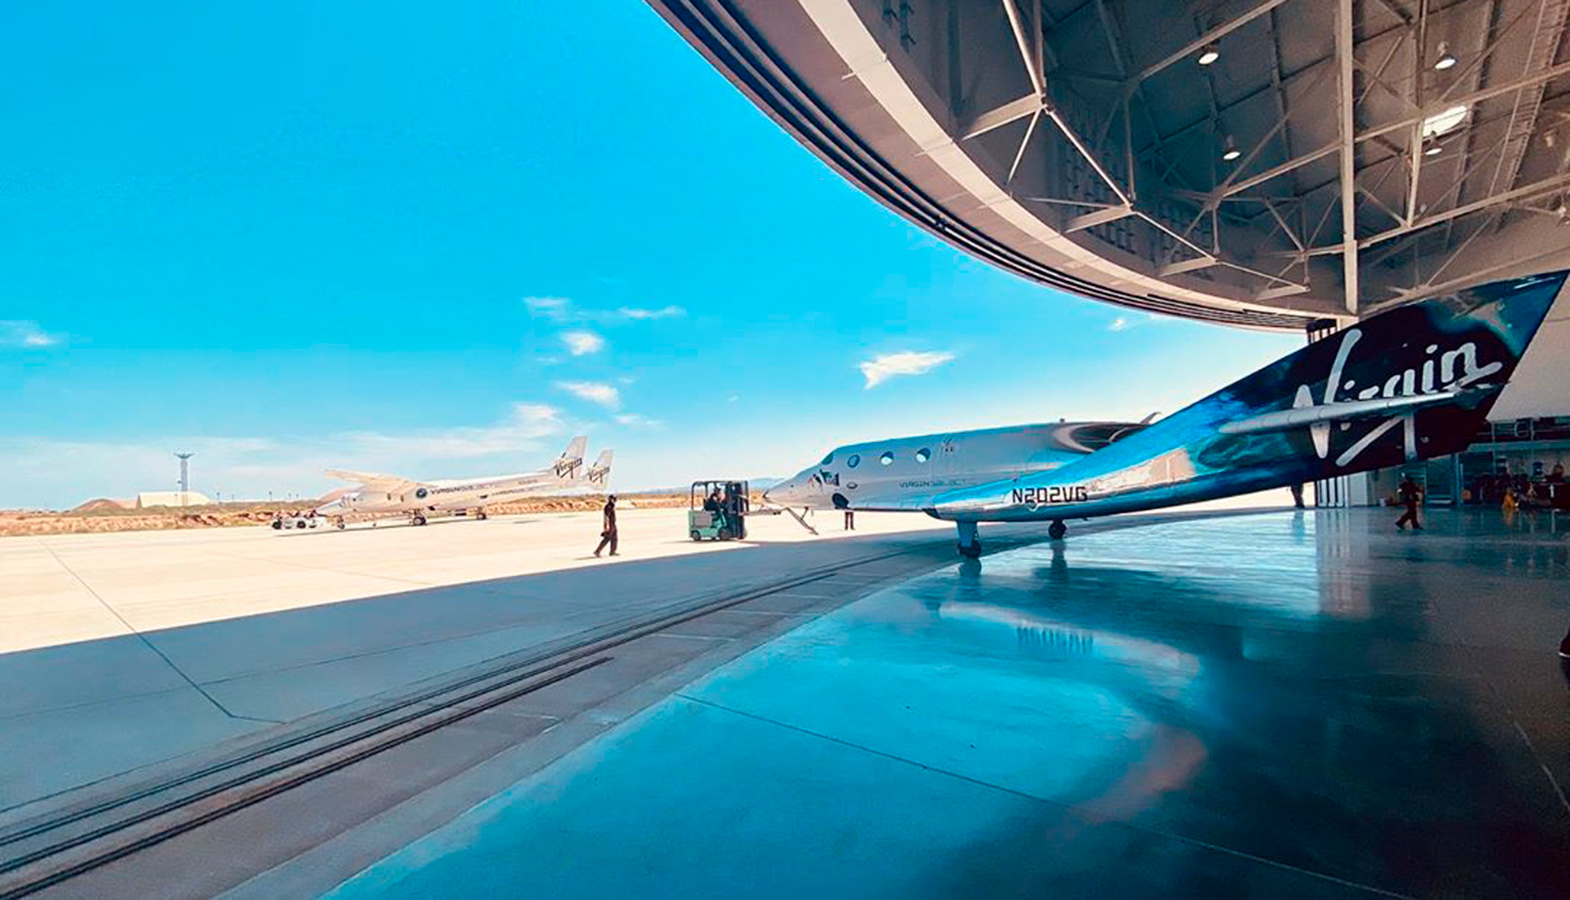 Virgin Galactic Has Shown A Virtual Concept Of The Cabin Of A New Tourist Spaceship